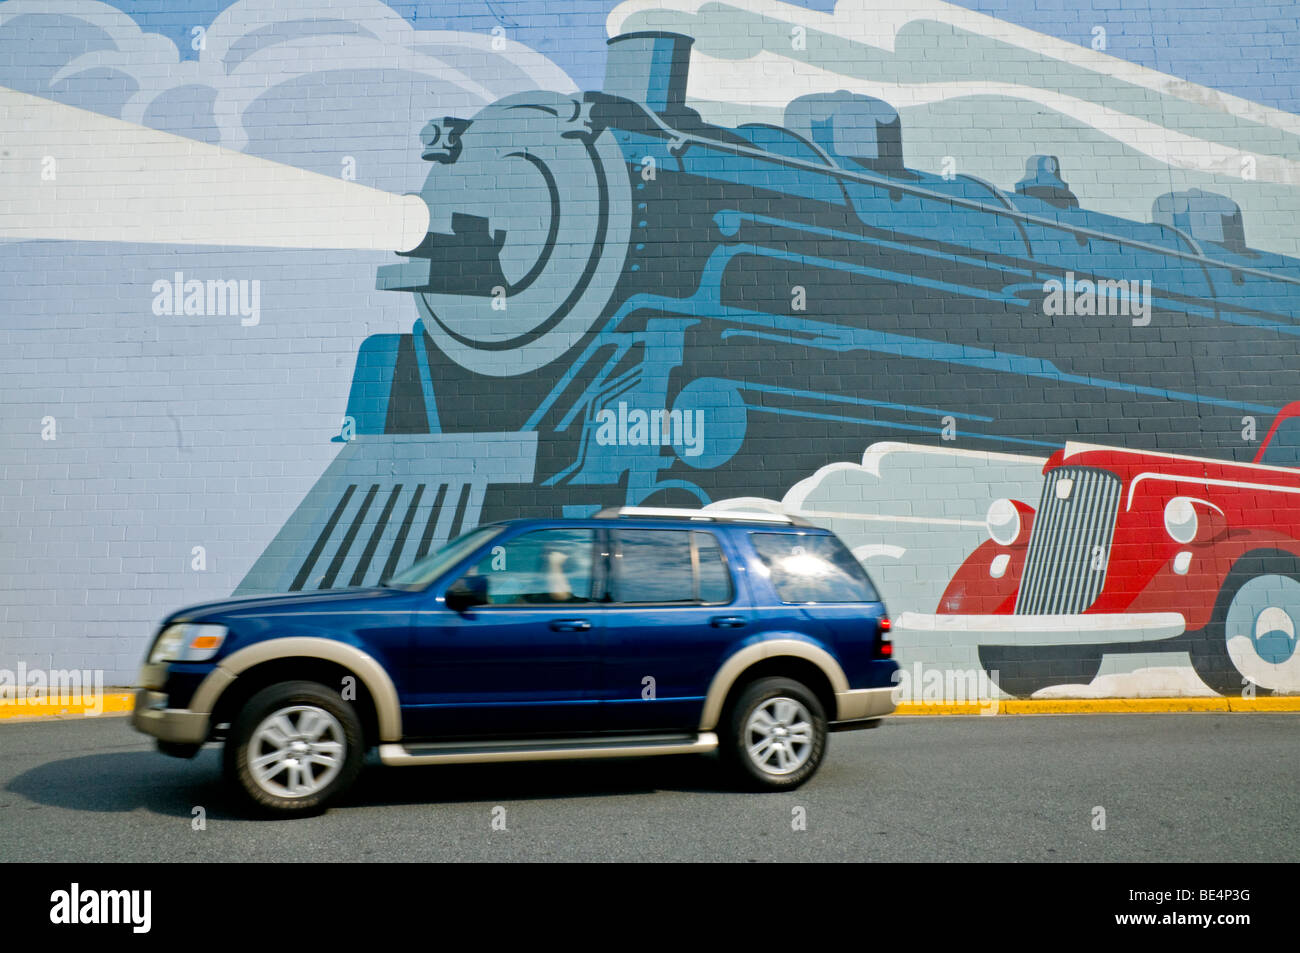 Ford Suv Photos Ford Suv Images Alamy